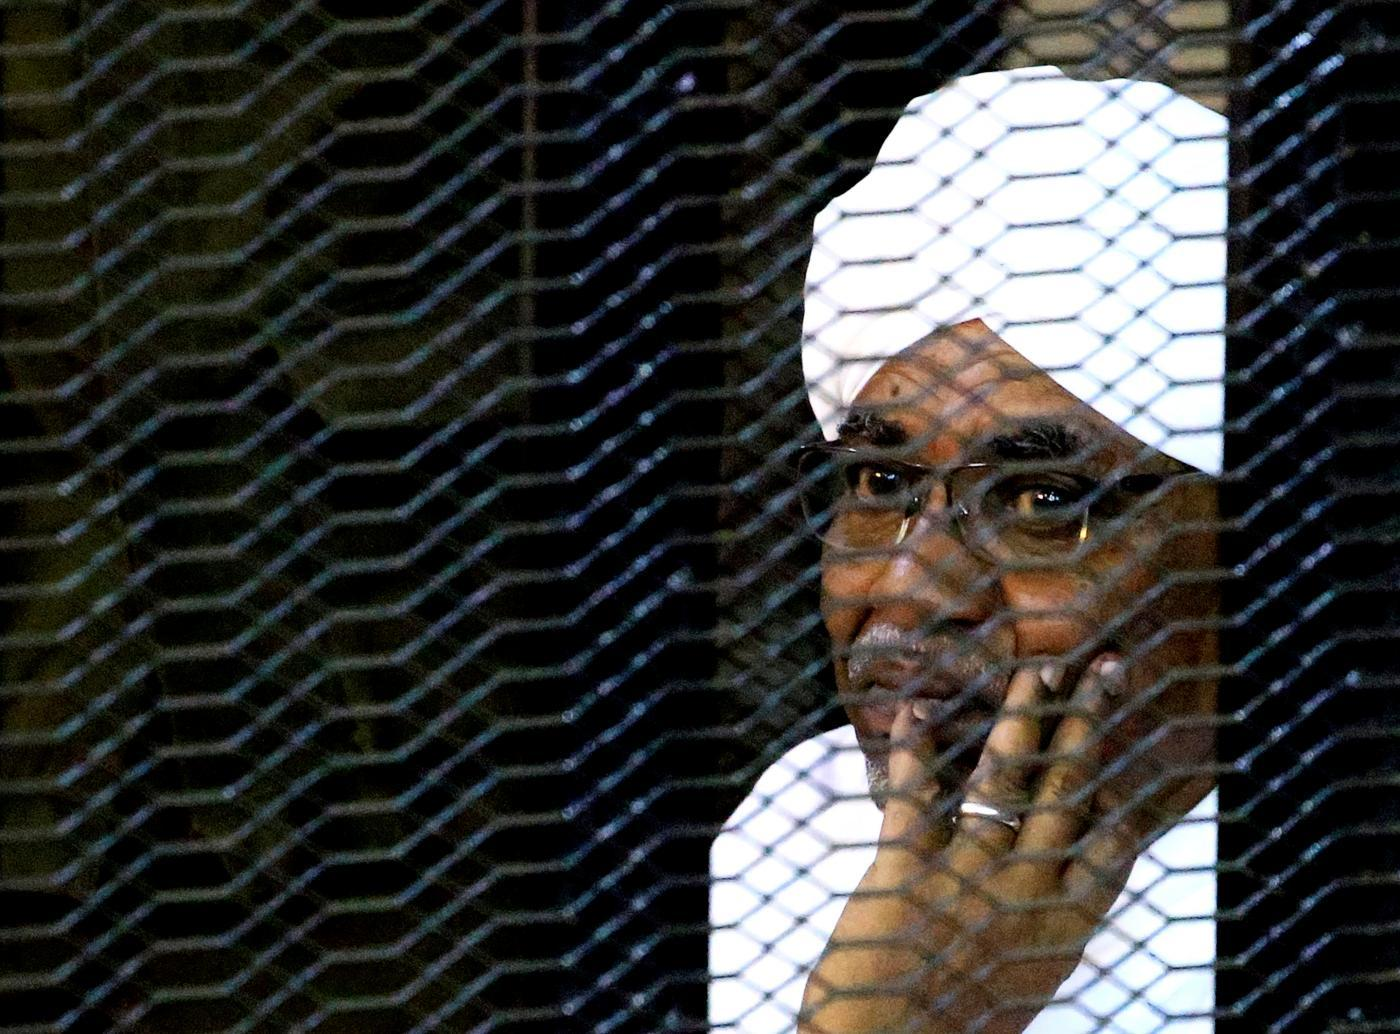 Sudanese court sentences Omar al-Bashir to 2 years in prison